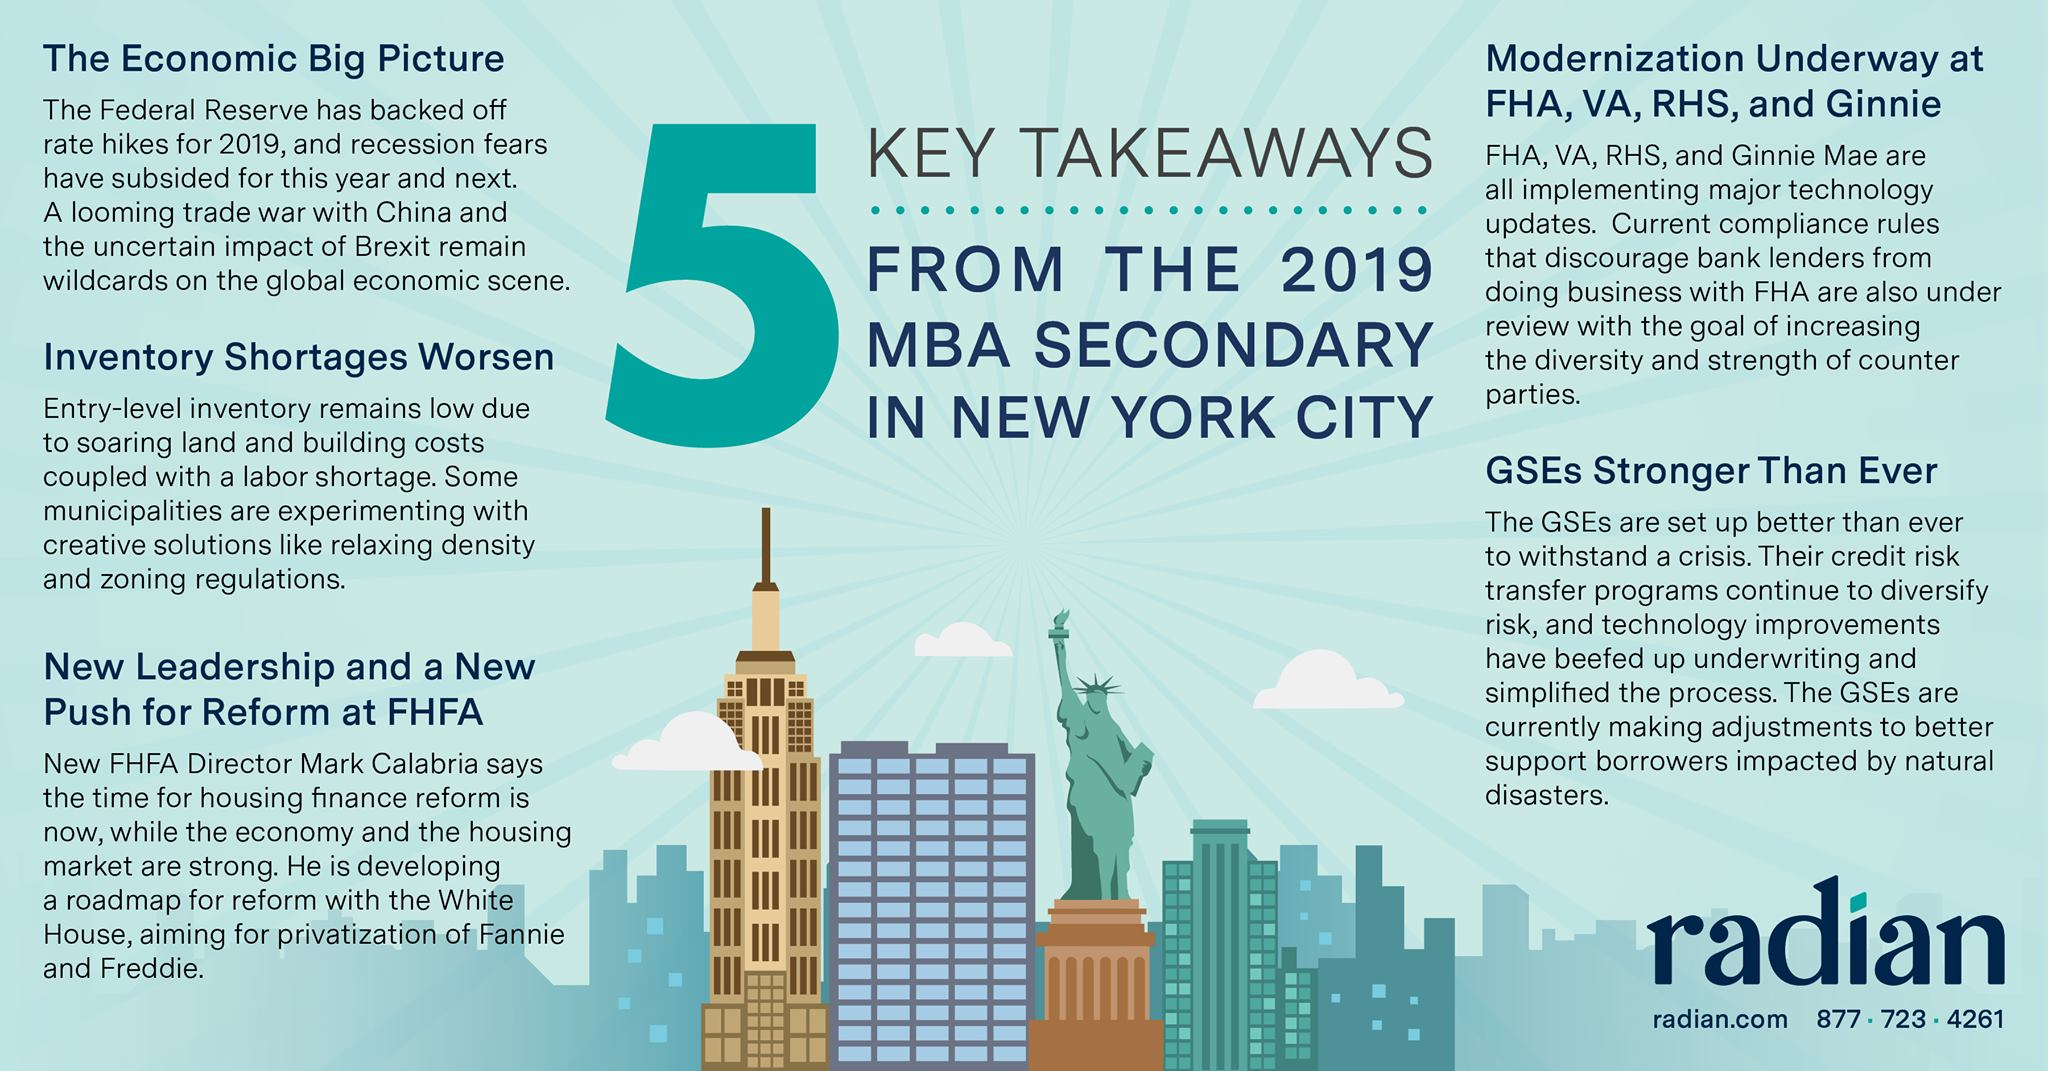 Five Key Takeaways from the 2019 MBA Secondary